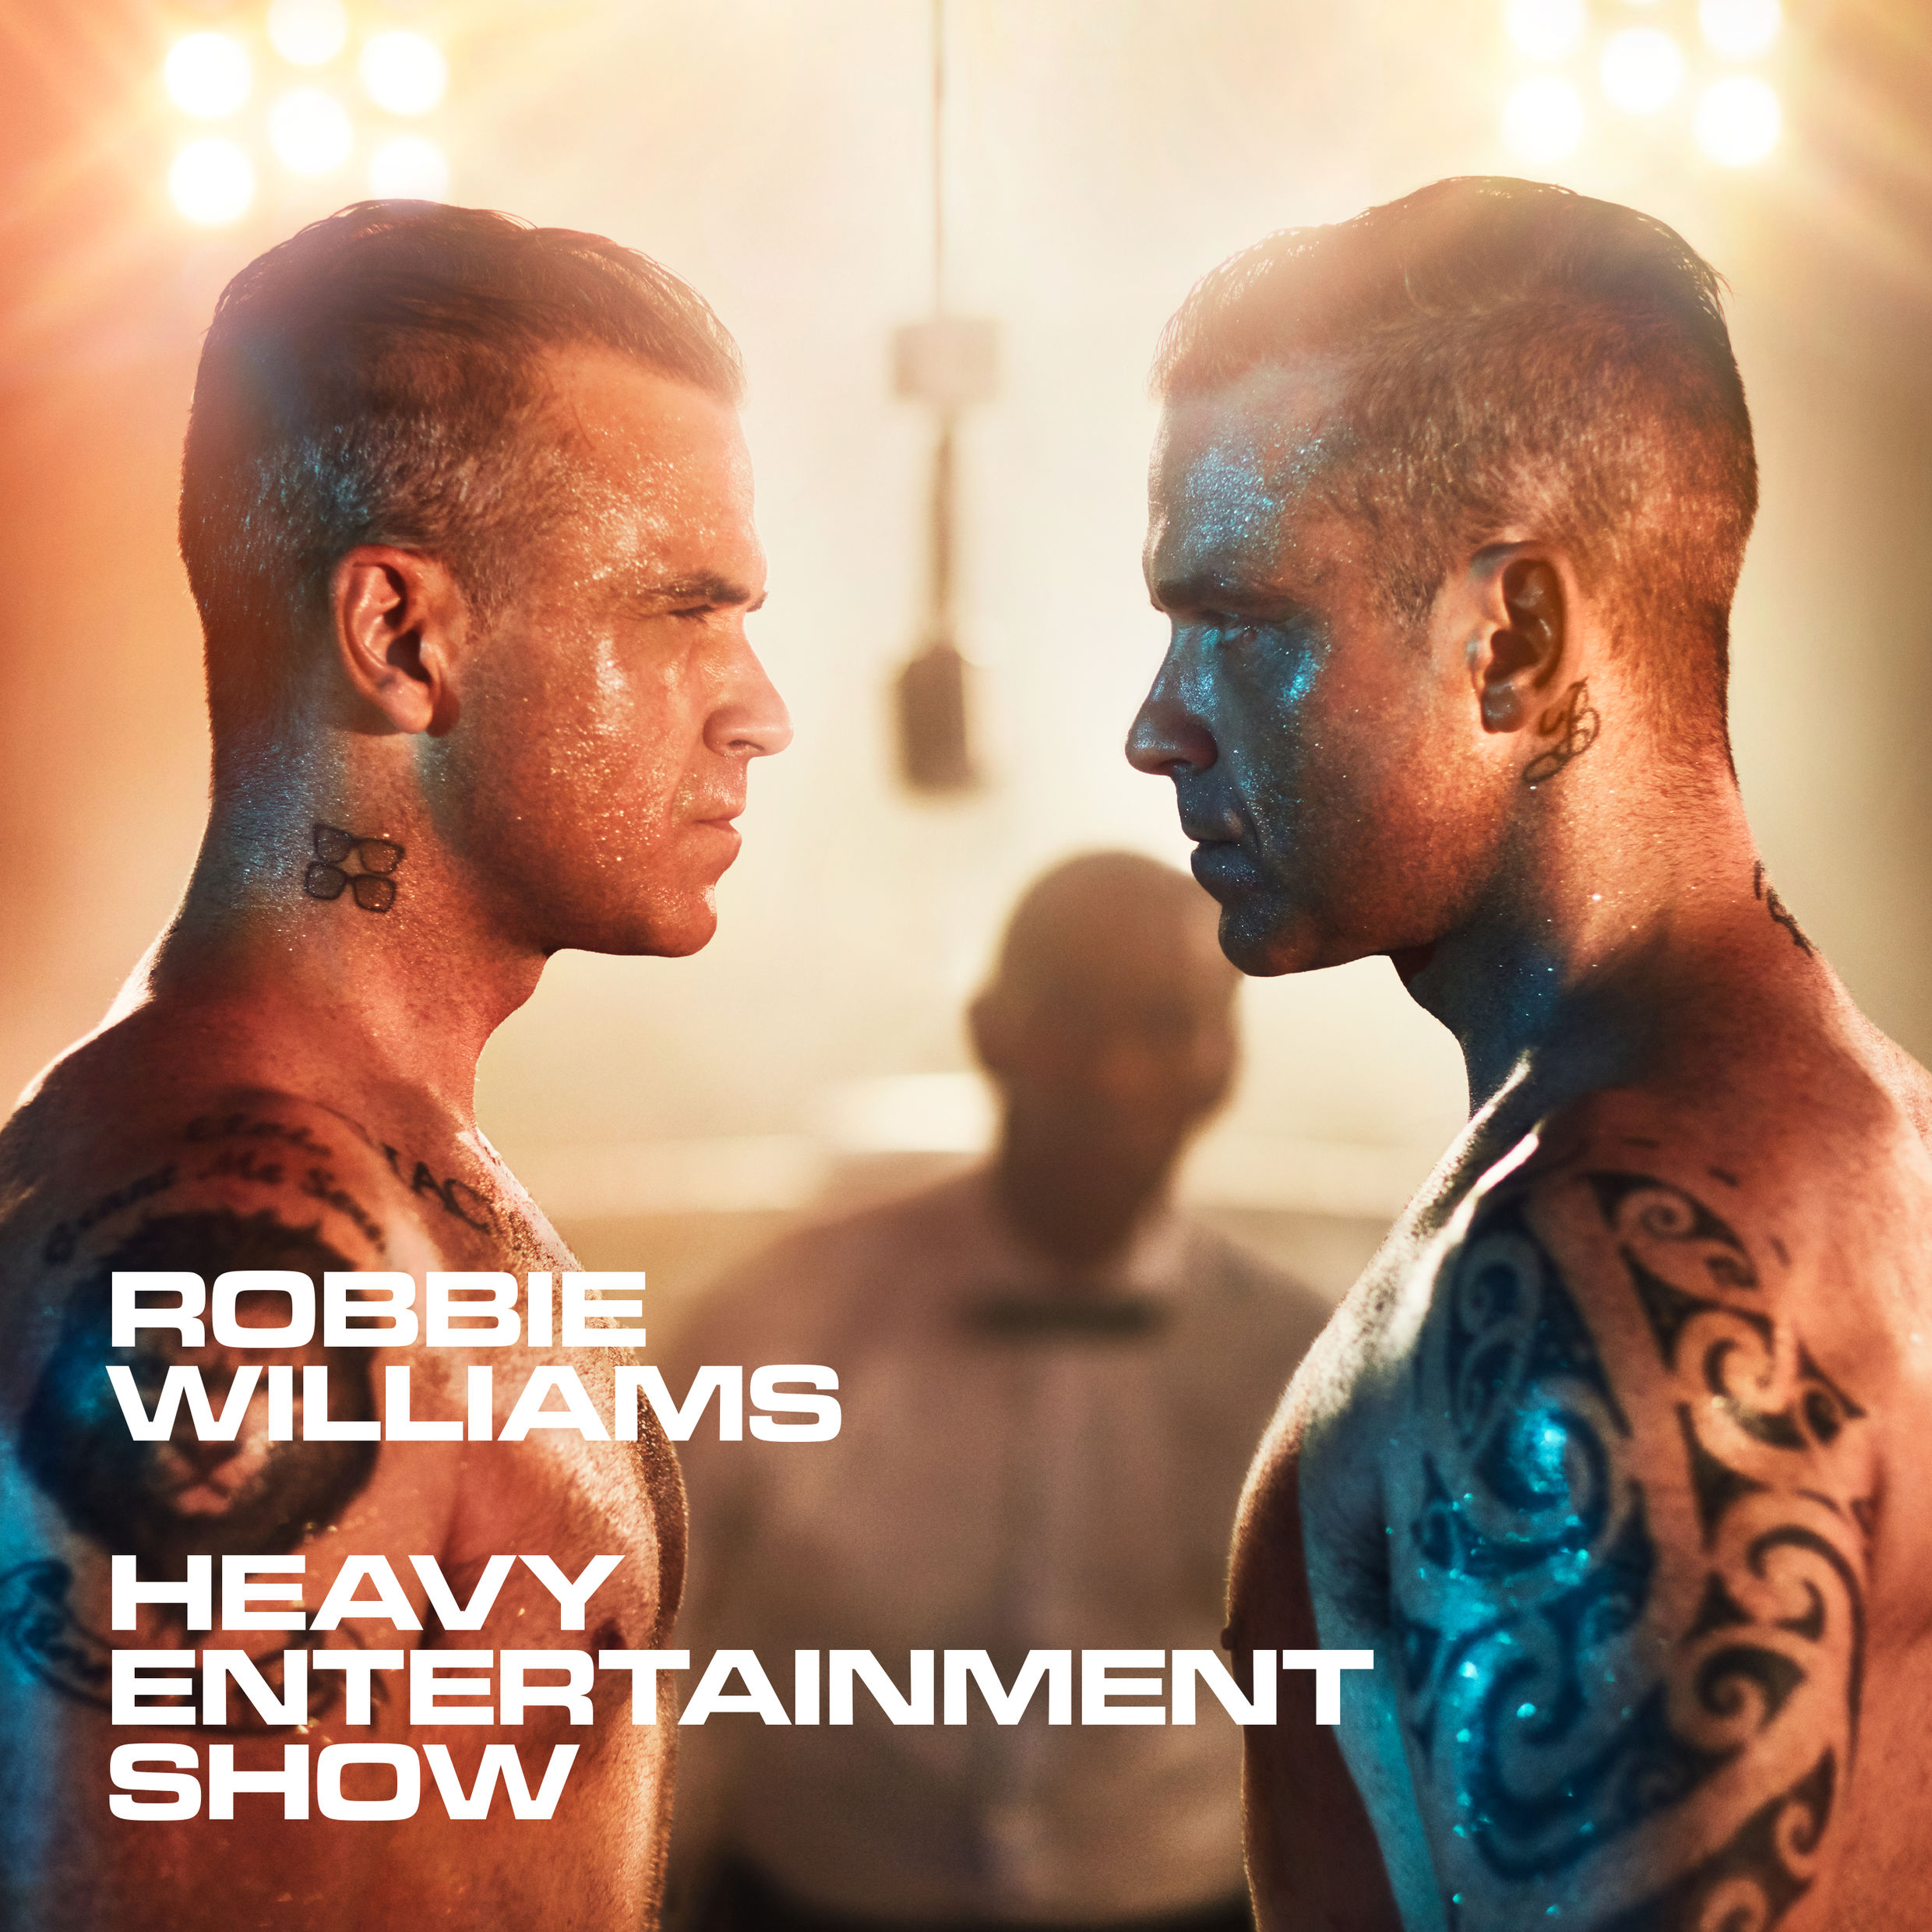 Robbie williams – heavy entertainment show